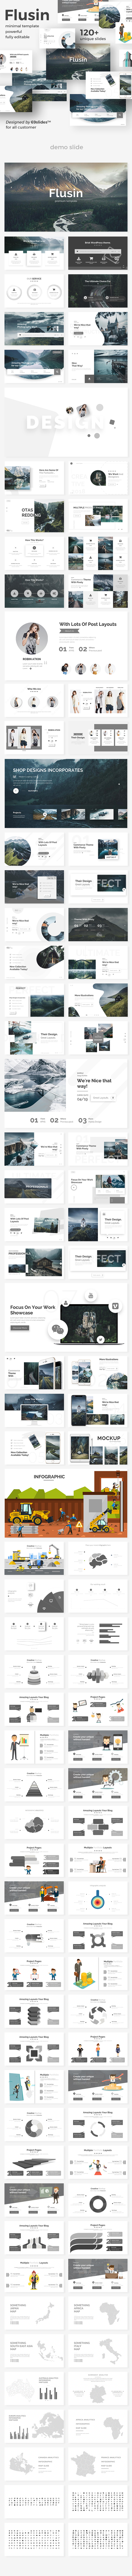 Flusin Creative Powerpoint Template - Creative PowerPoint Templates